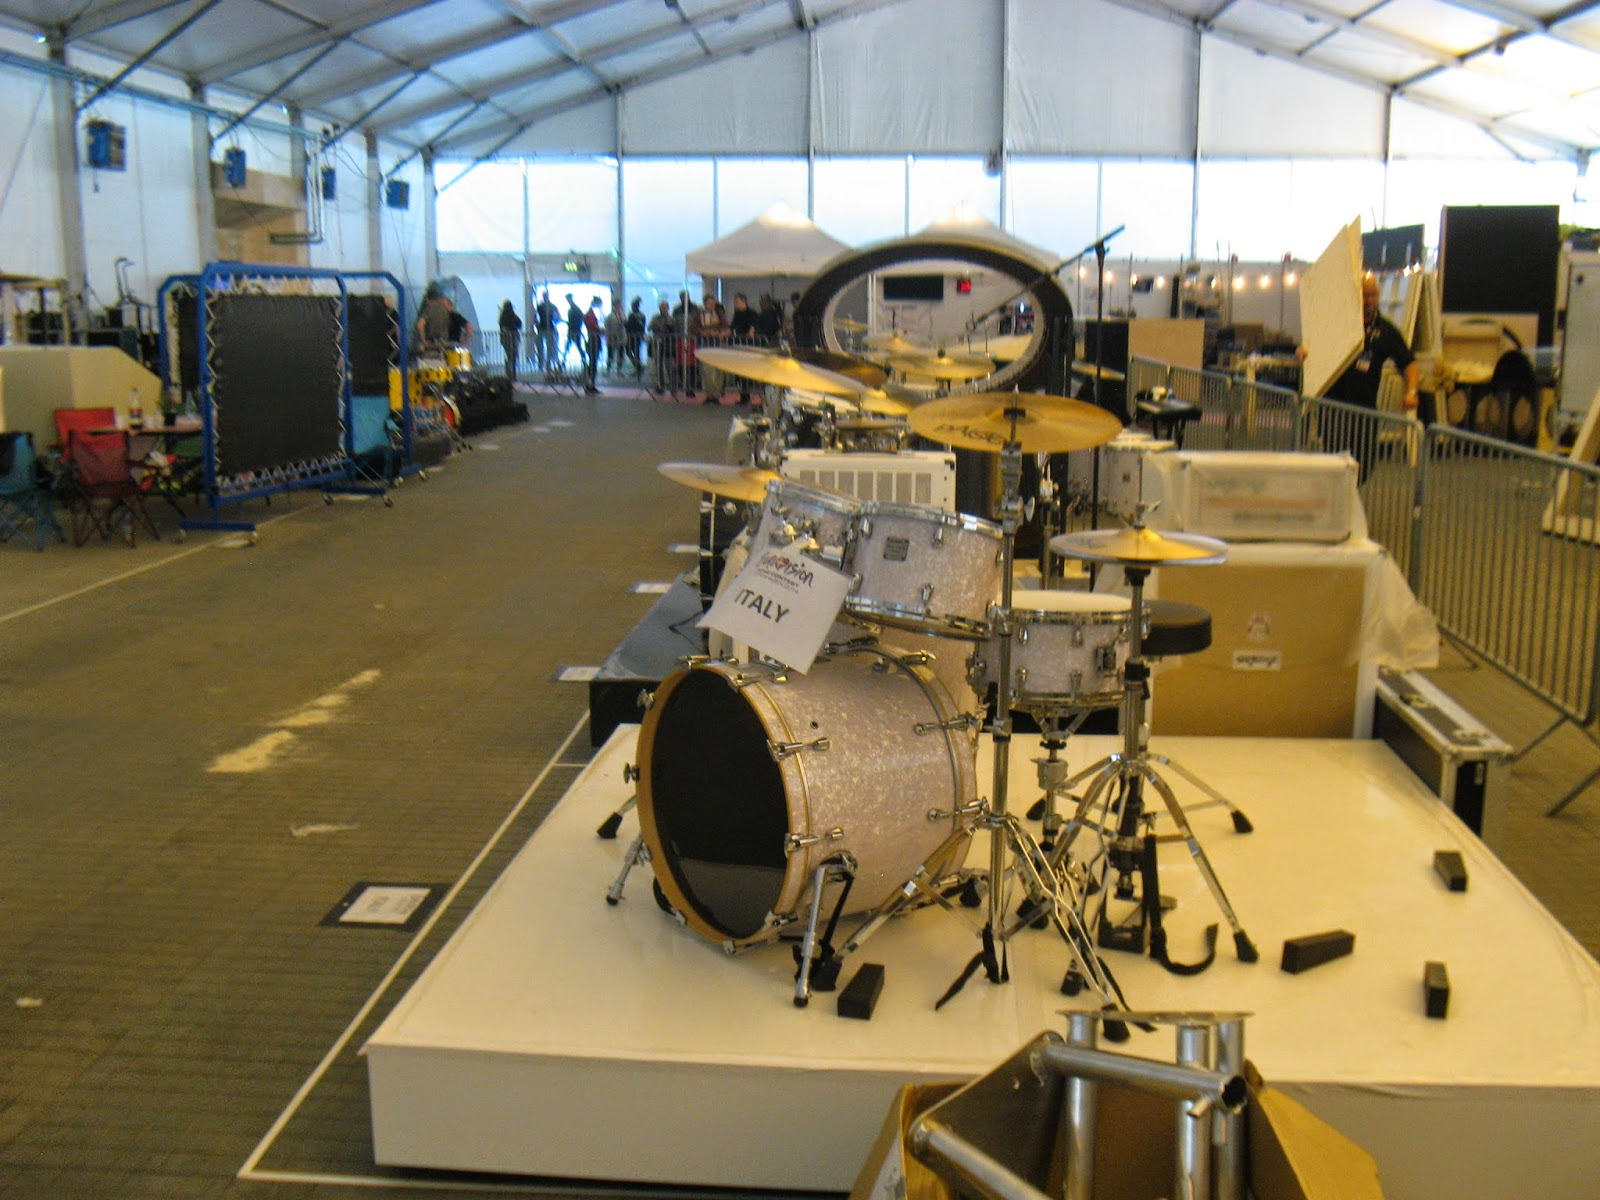 Life After Helsinki 2007 Eurovision April 2014 Hello Nuku Panama Brown Wedges Cokelat Tua 36 As We Know Many Countries Have Some Special Props Everything From Drum Sets To Something Weird And Strange Here Are I Spotted Today Backstage